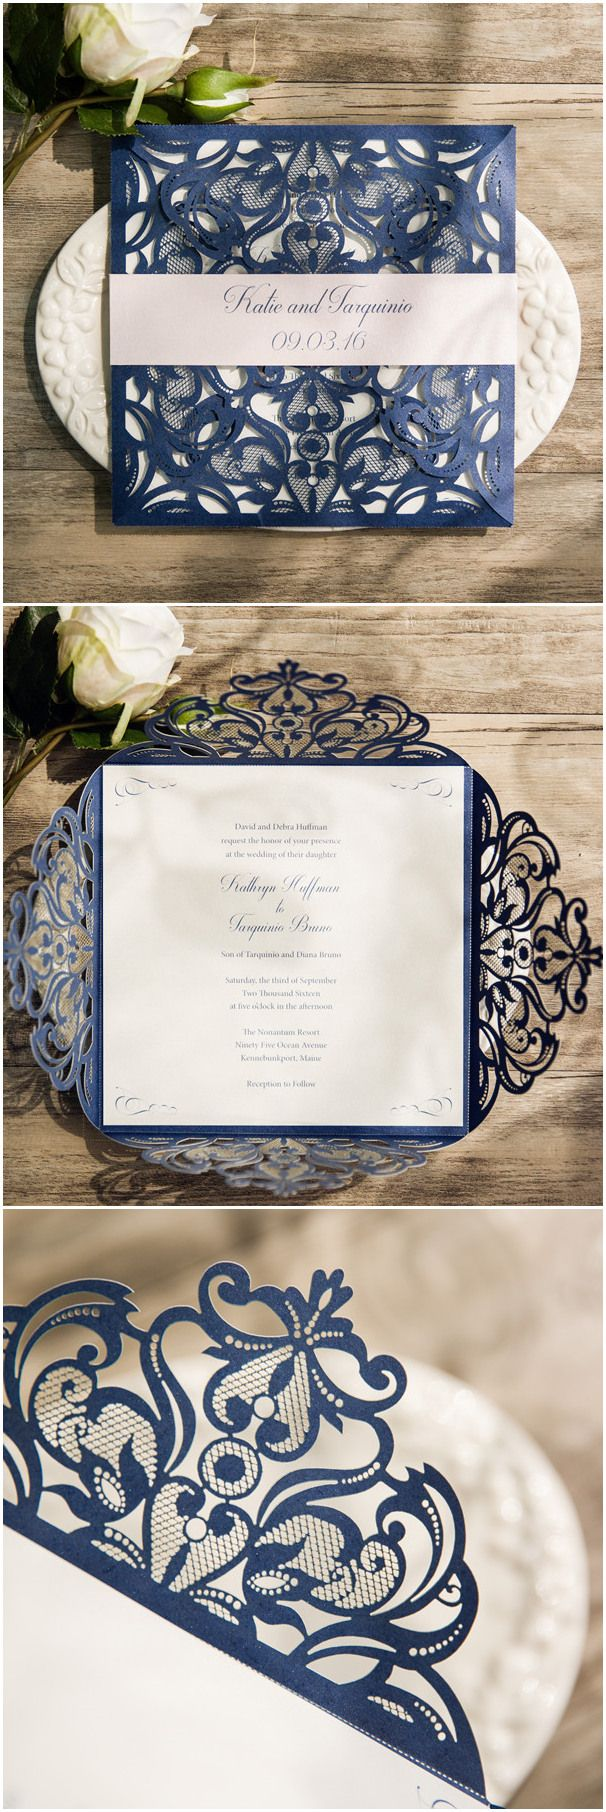 118 Best Blue Wedding Invitations Images On Pinterest Mariage